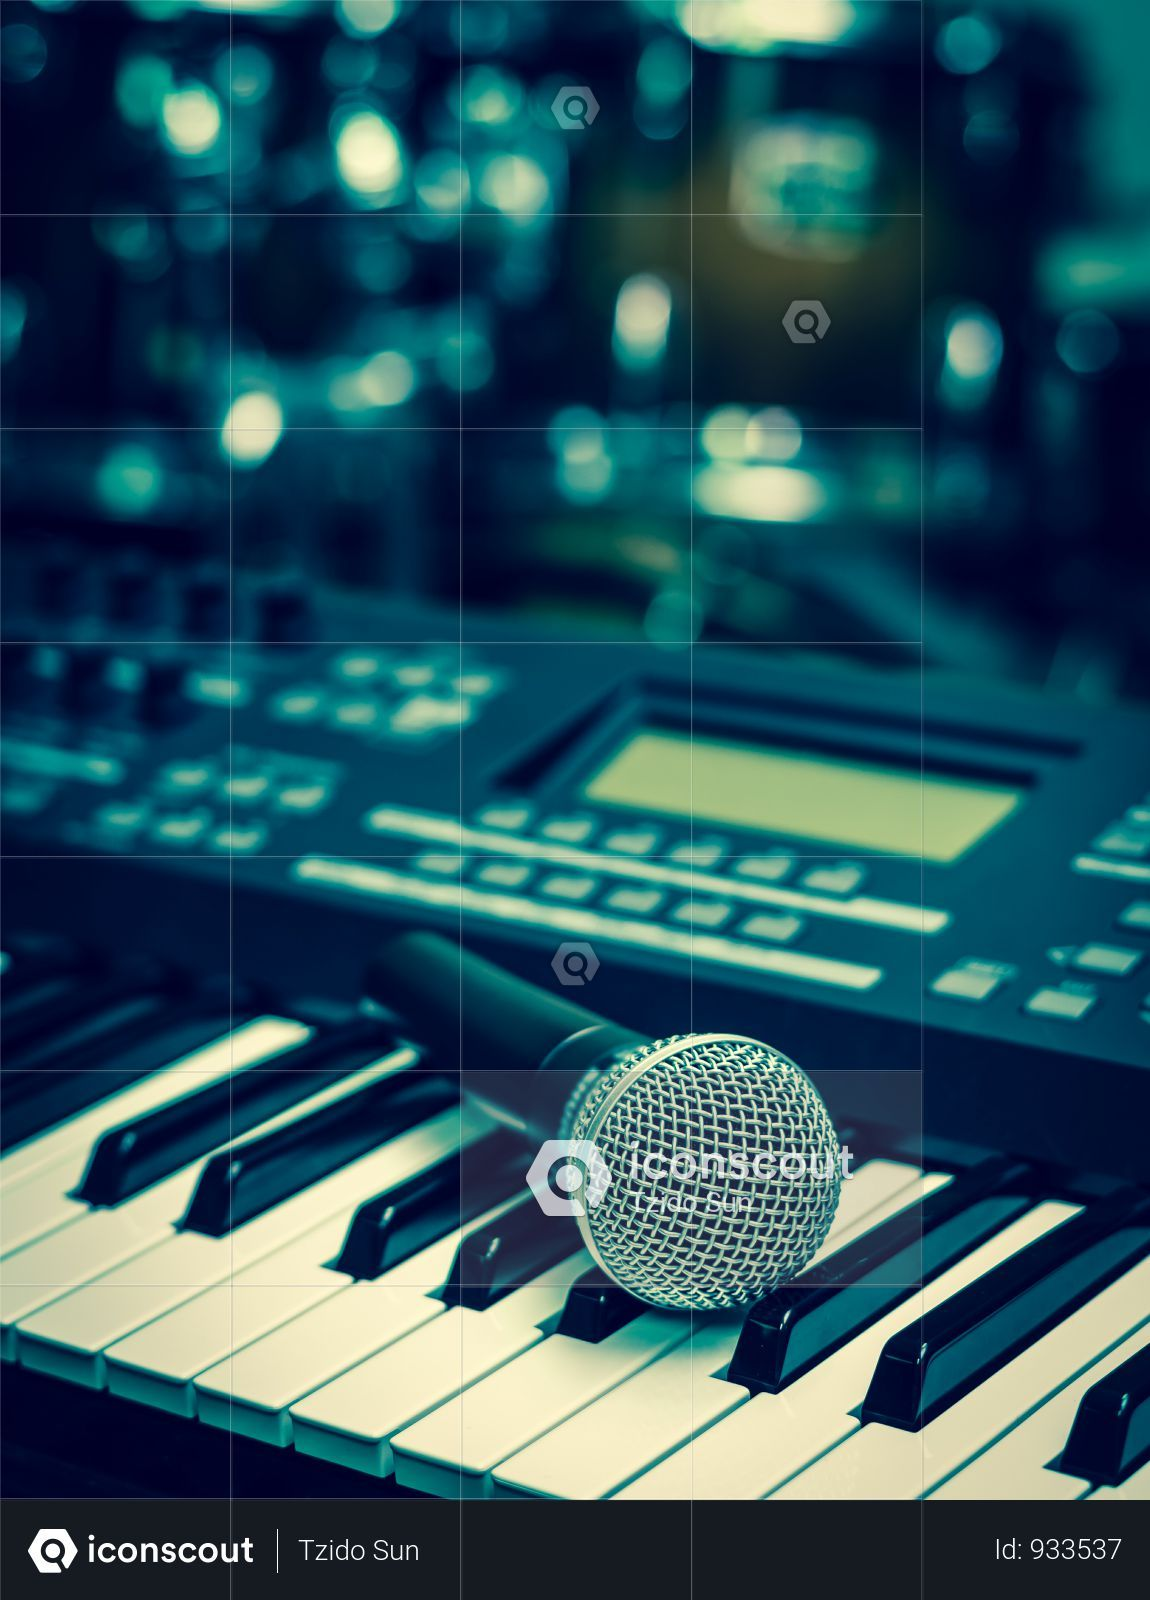 Premium Microphone On Music Keyboard With Music Brand Blurred Background Photo Download In Png Jpg Format Music Keyboard Blurred Background Microphone